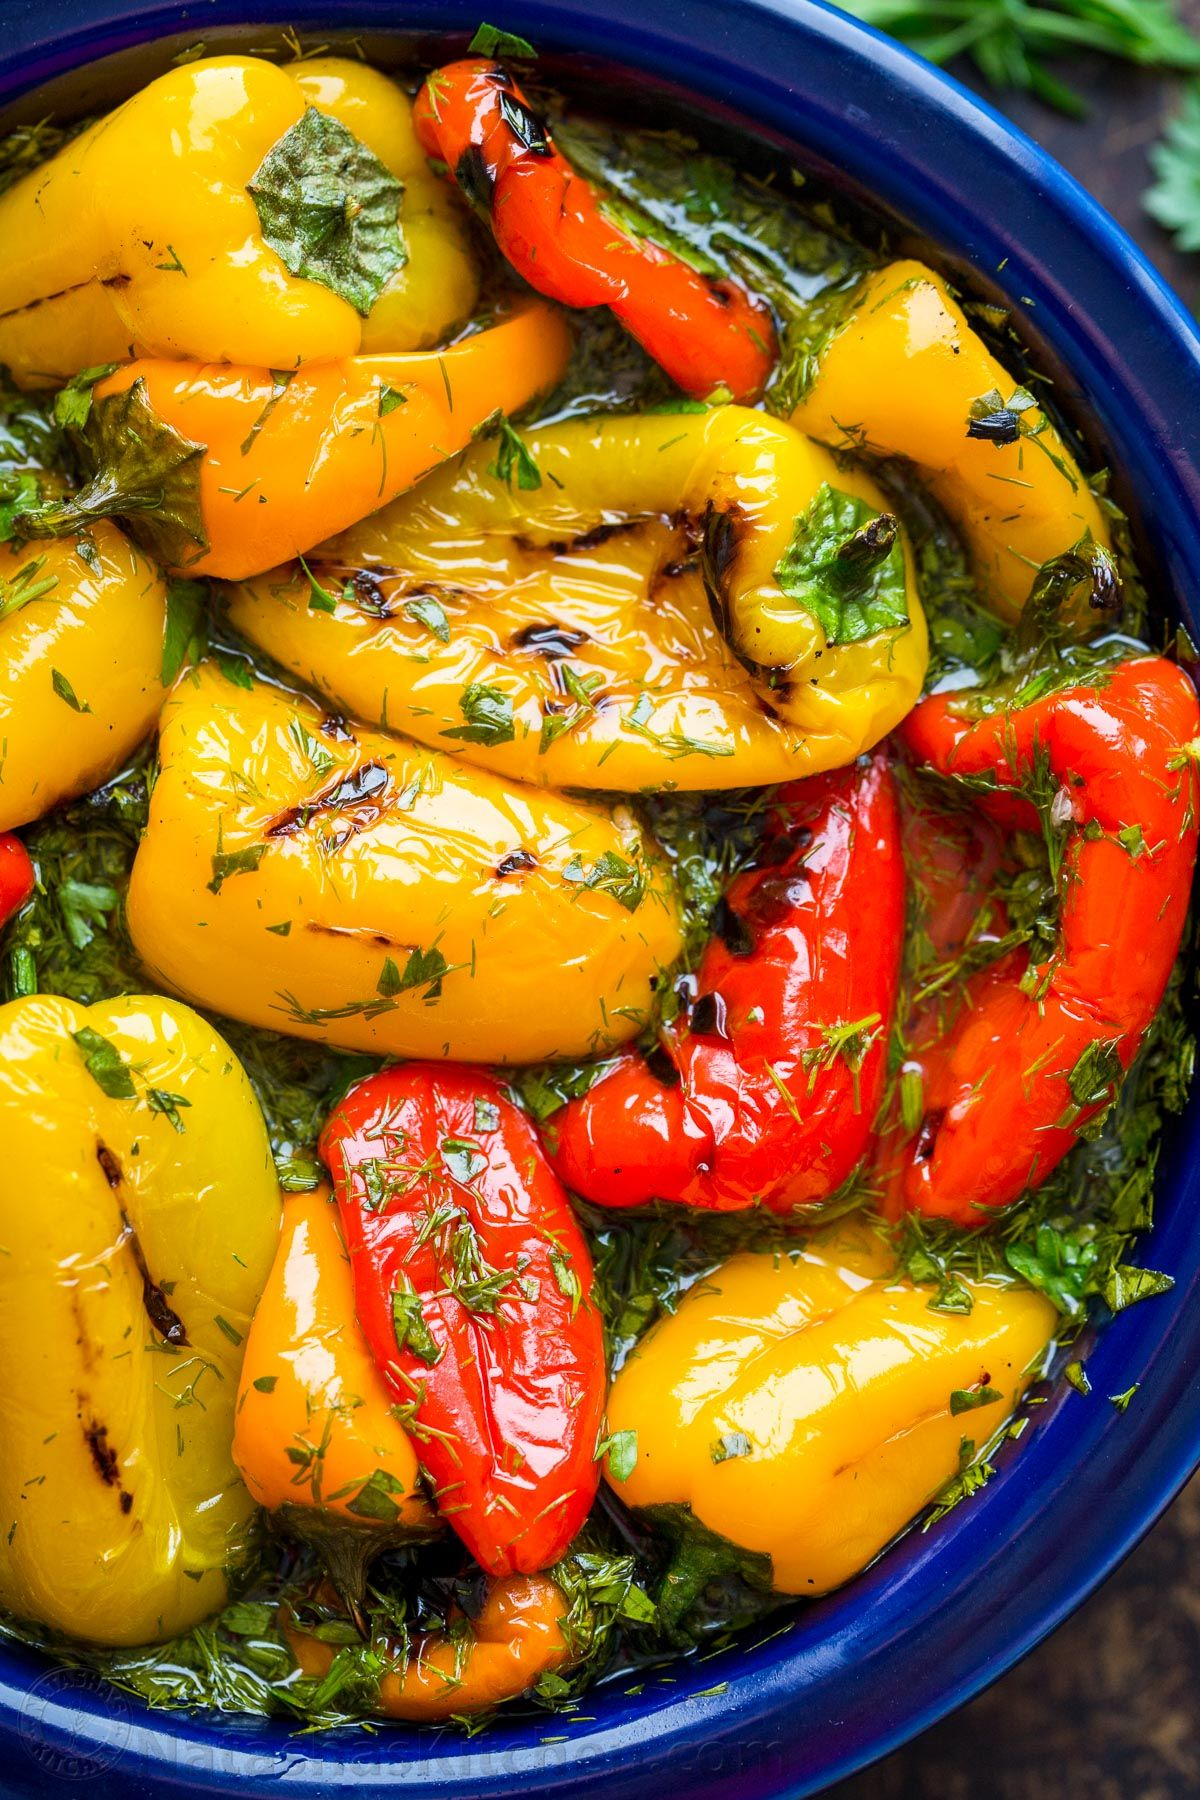 Marinated Mini Sweet Peppers Recipe (VIDEO) - Natasha's Kitchen